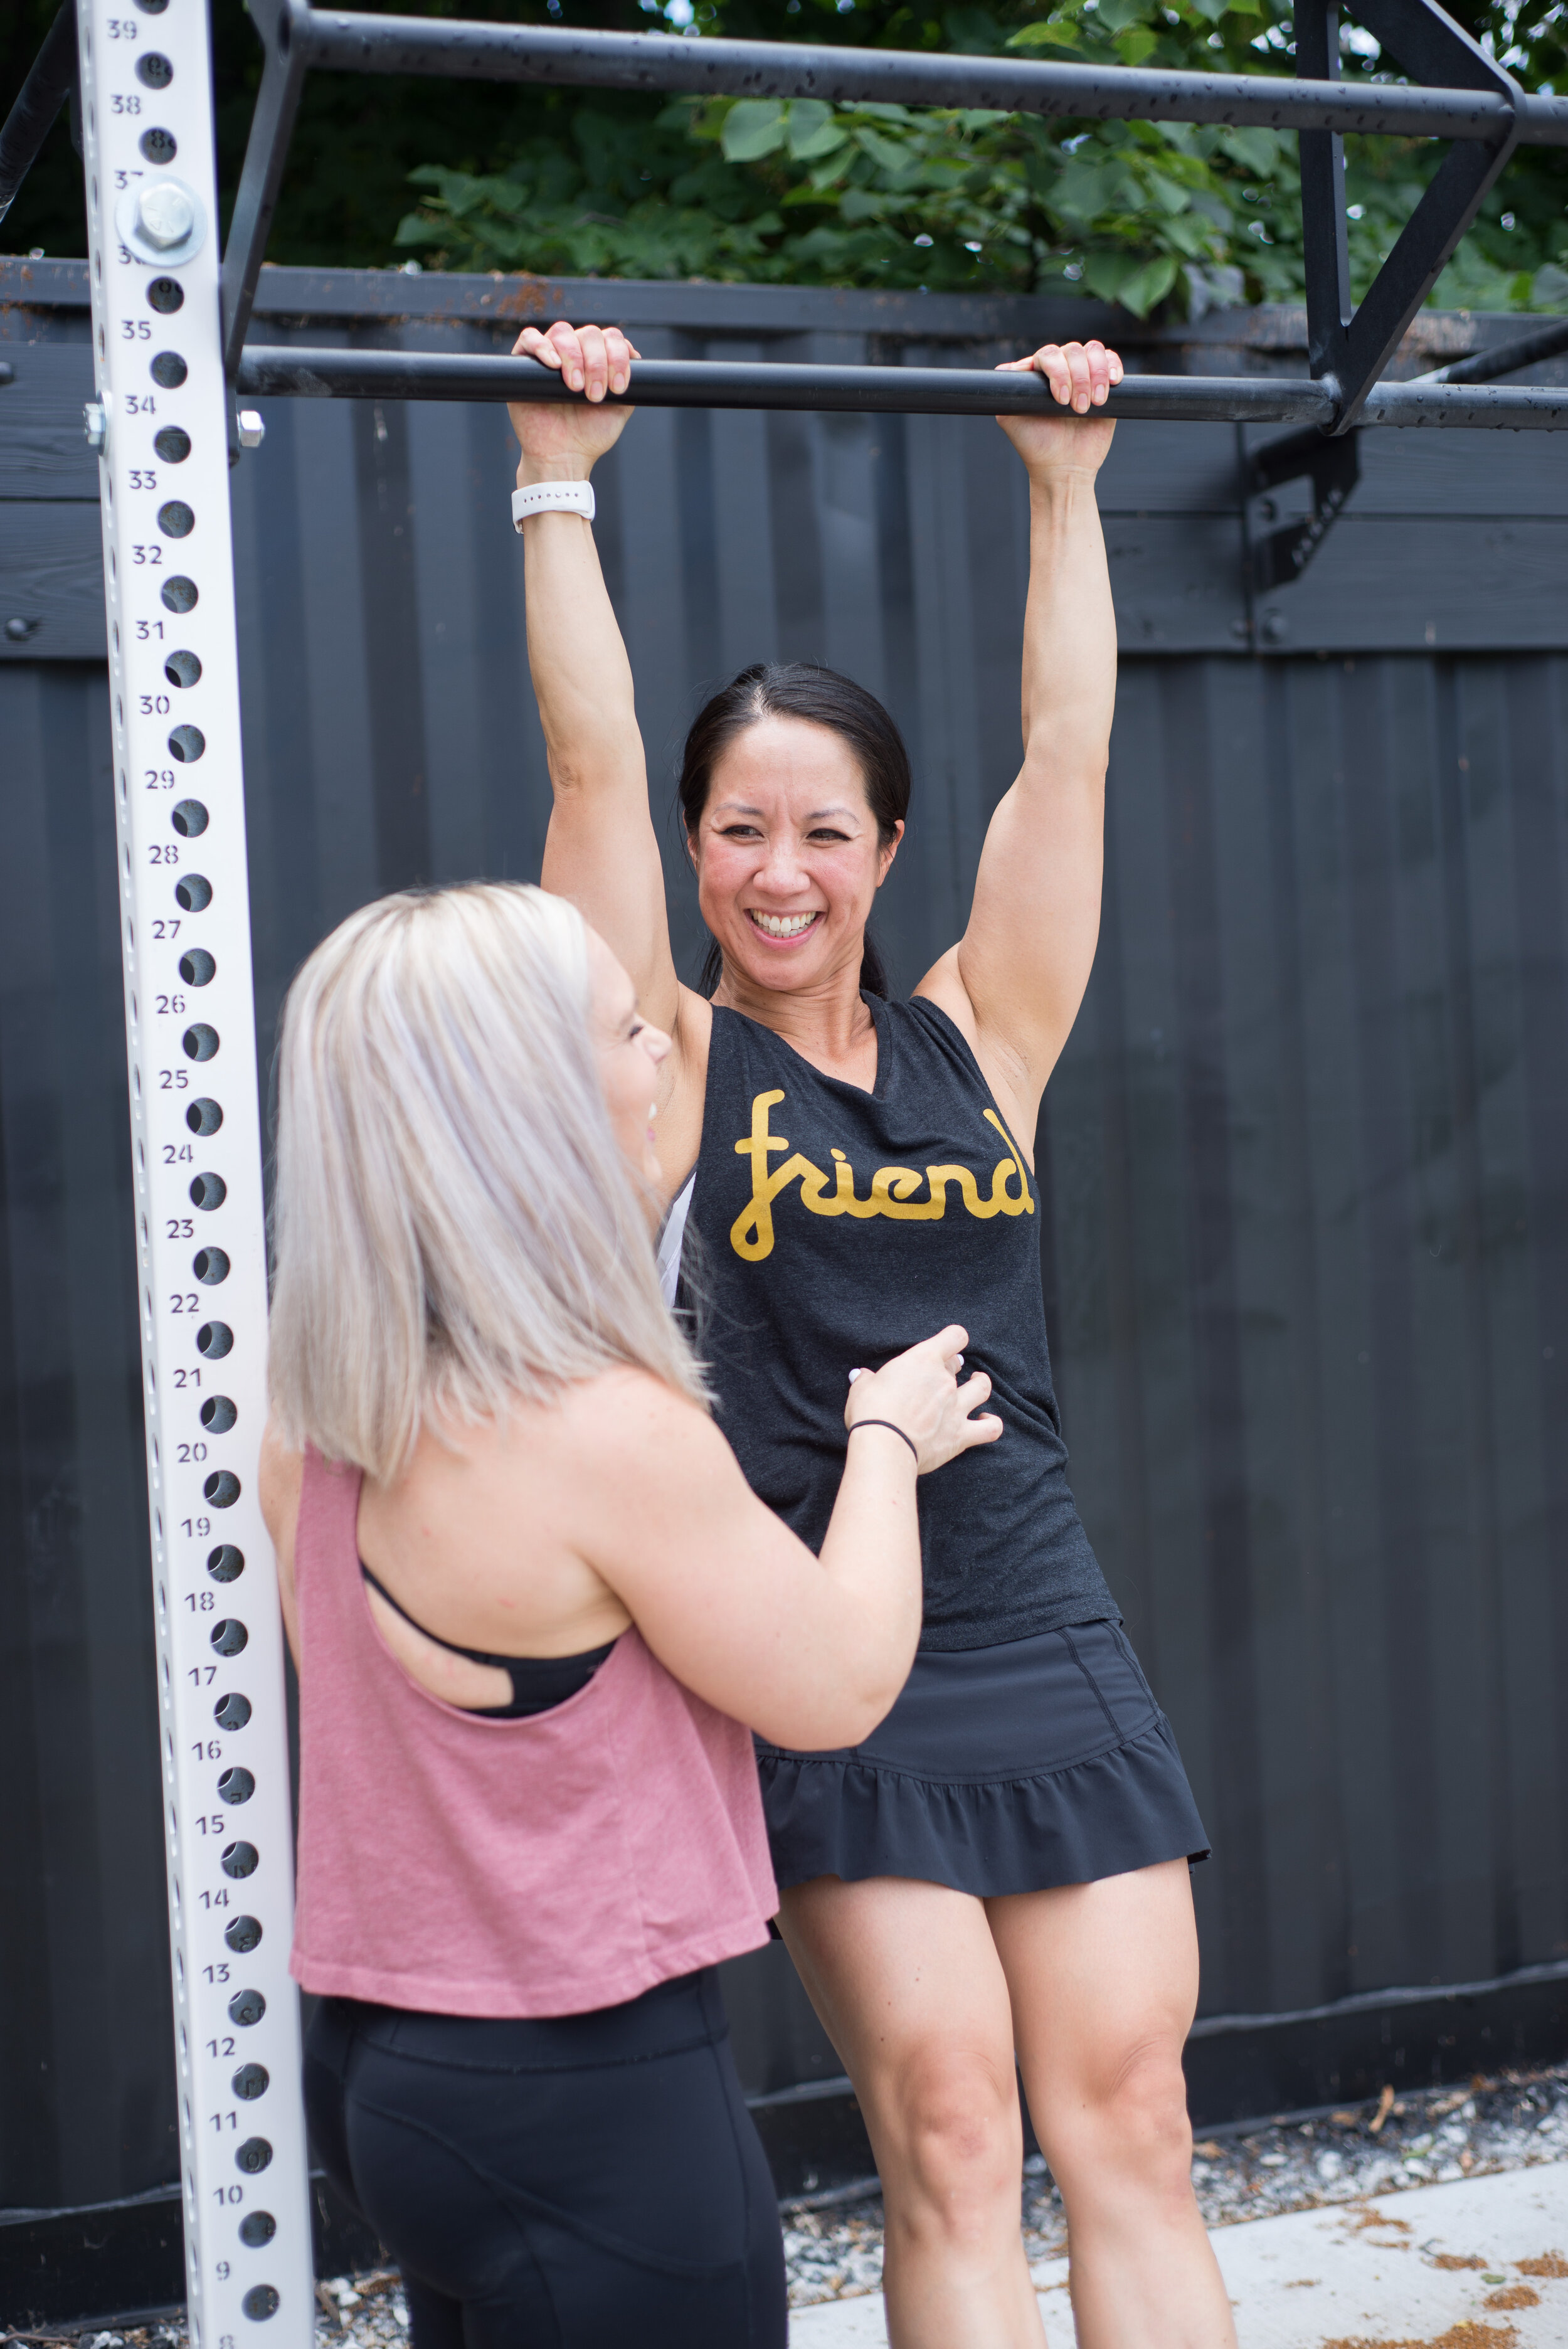 Coach Jenny Borda does Personal Training with Shelly working on her Pull-ups at our Outdoor Workout Gym in Dublin, Ohio